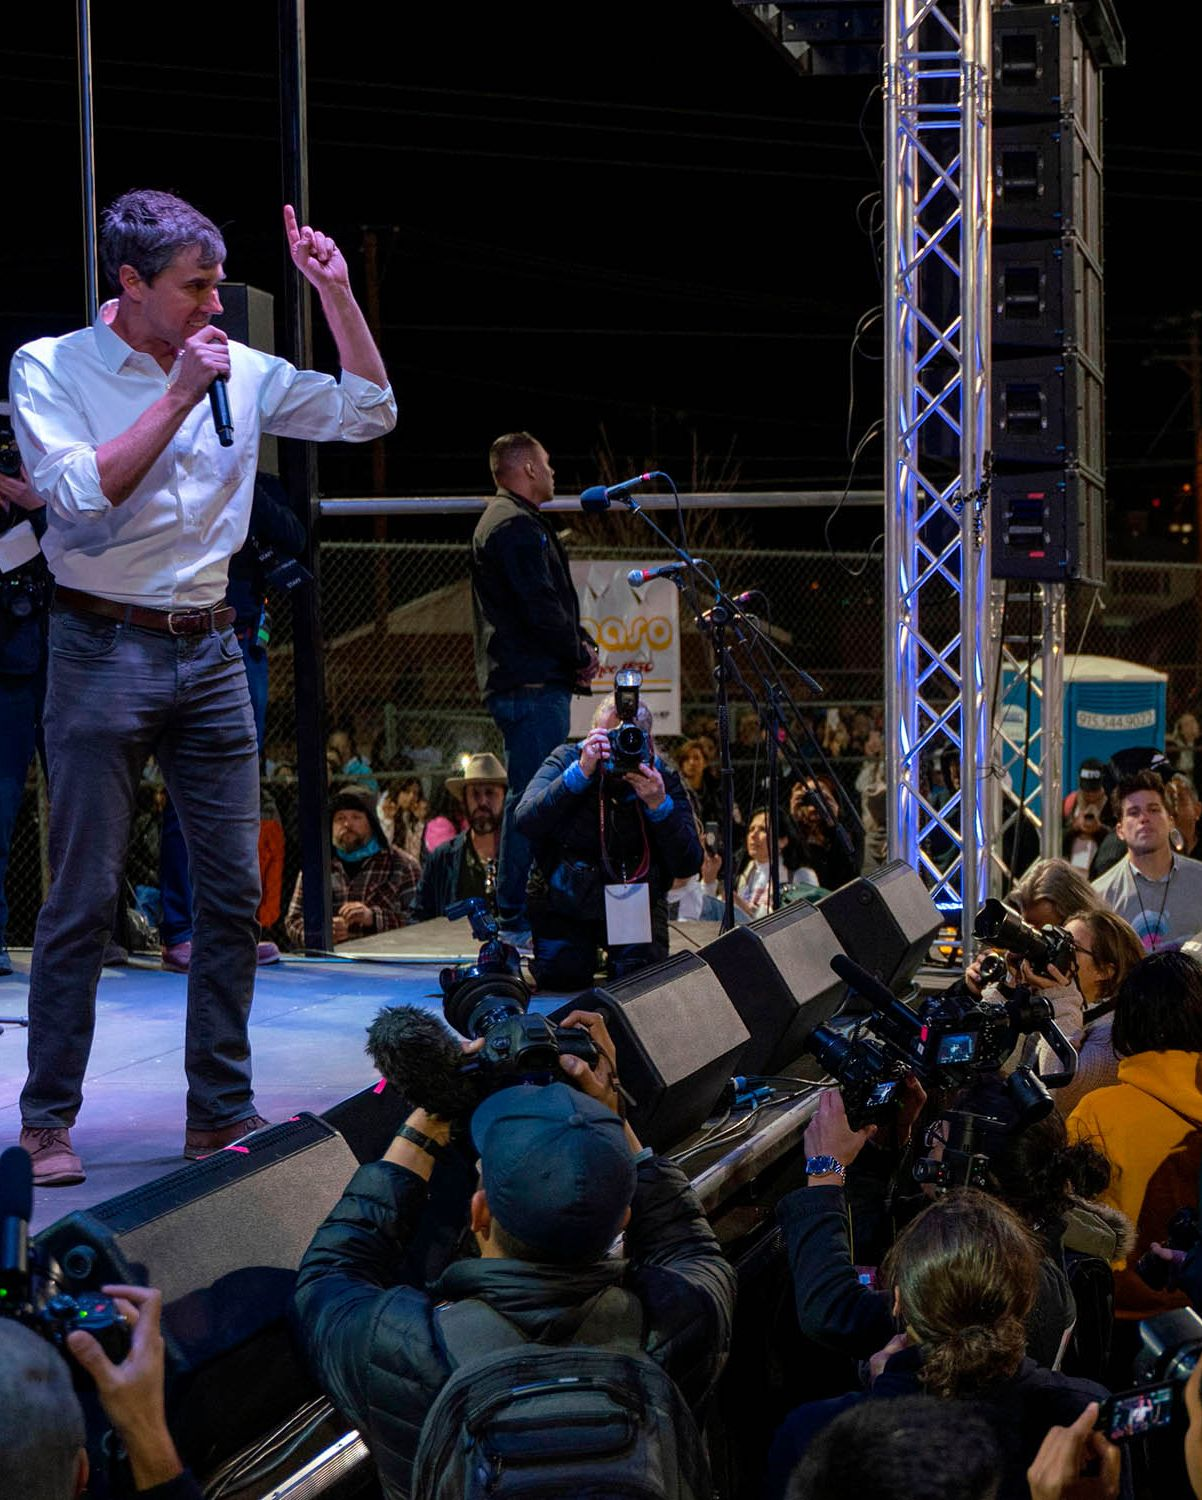 """Beto O'Rourke speaks to a crowd of supporters at Chalio Acosta Sports Center at the end of the anti-Trump """"March for Truth"""" in El Paso, Texas, on February 11, 2019."""